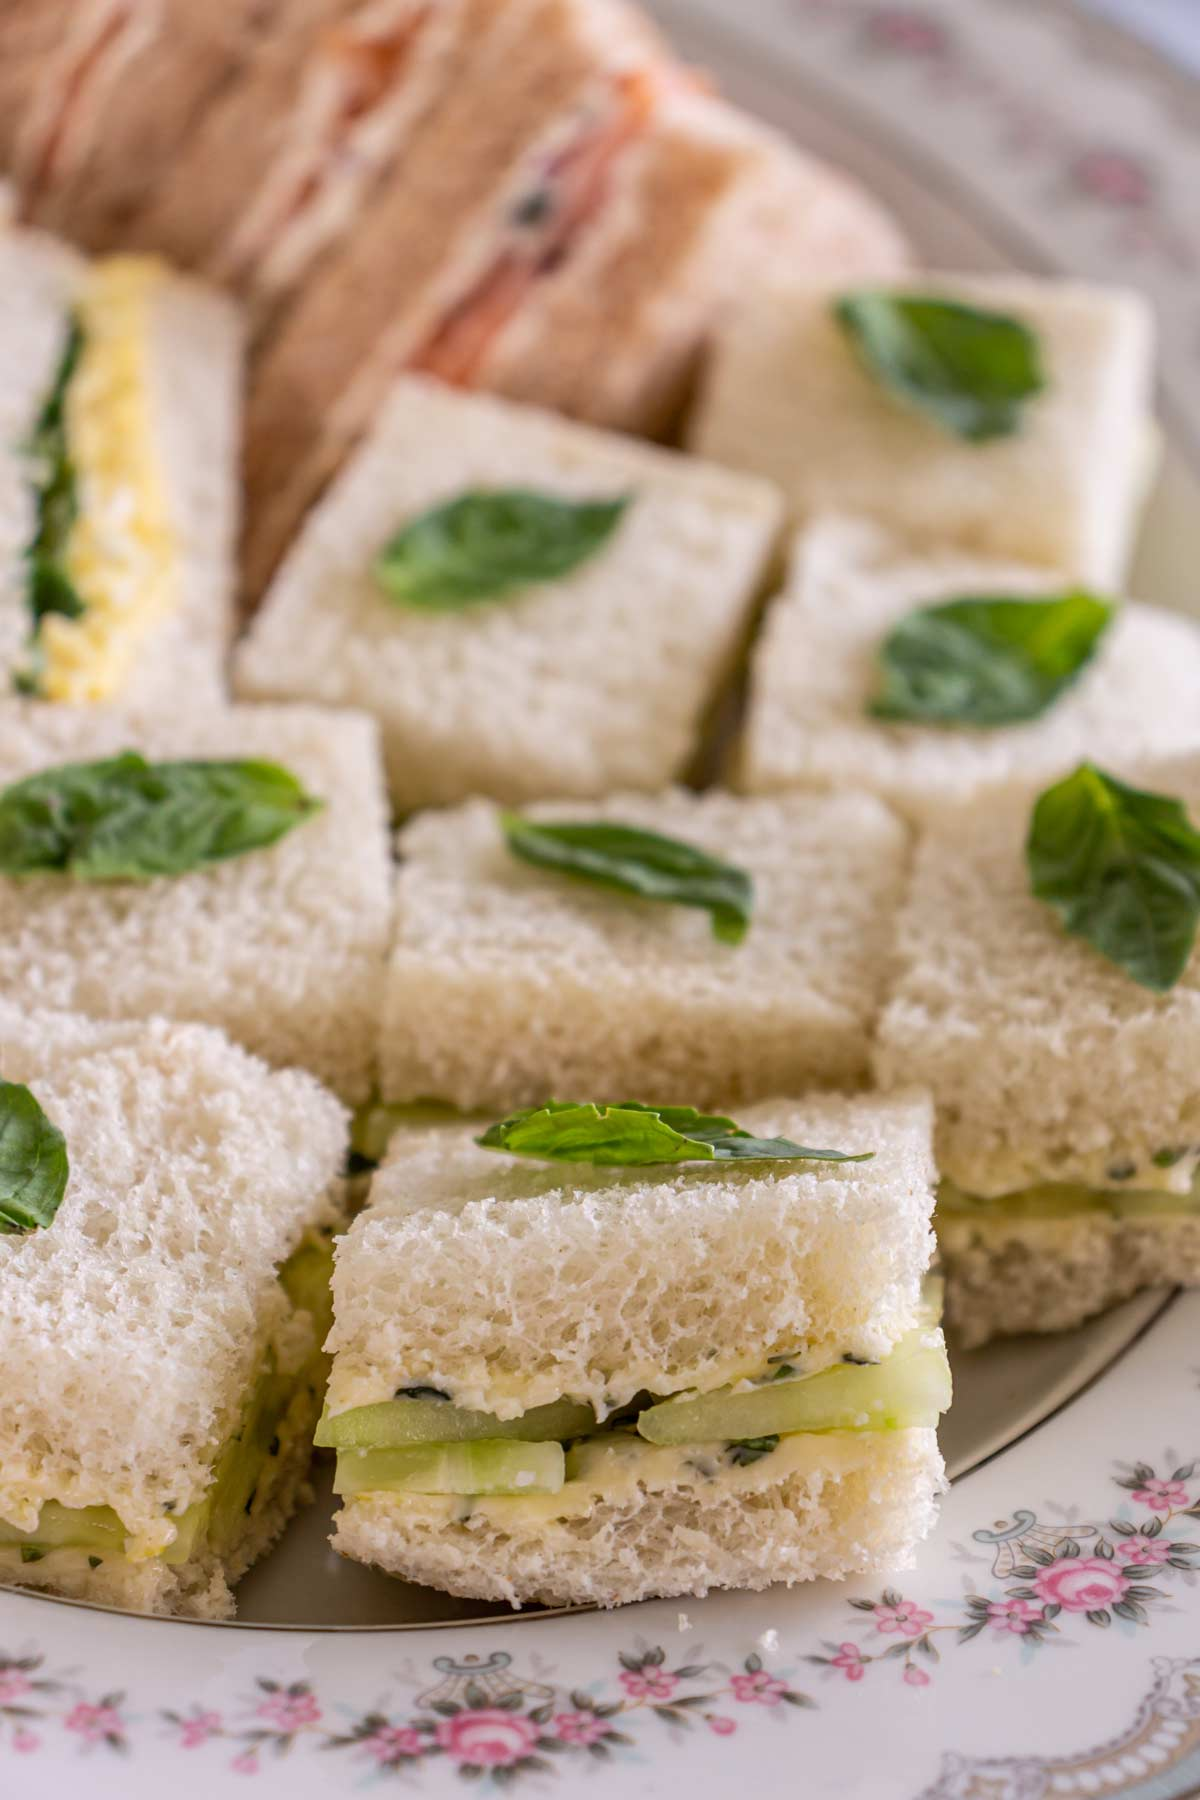 Closeup of small square English cucumber sandwiches topped with fresh basil leaves on a platter.